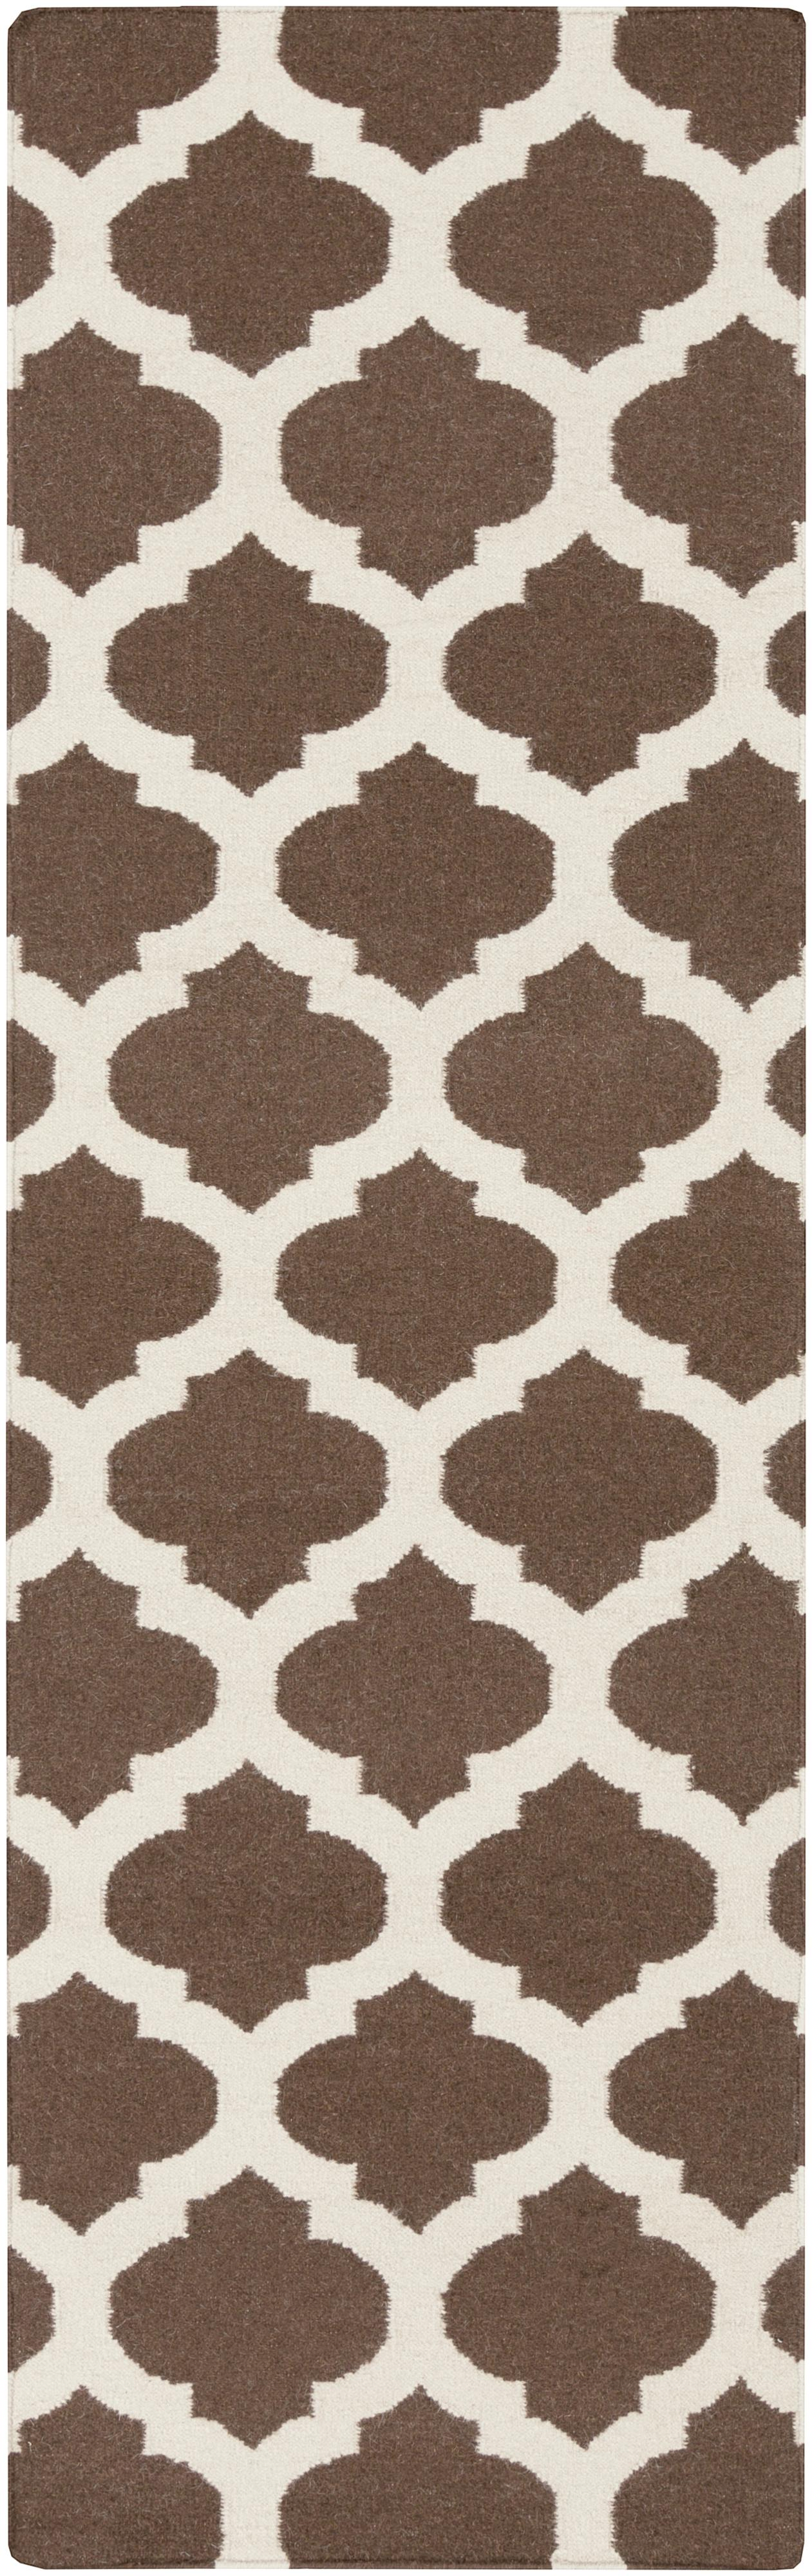 "Surya Rugs Frontier 2'6"" x 8' - Item Number: FT541-268"